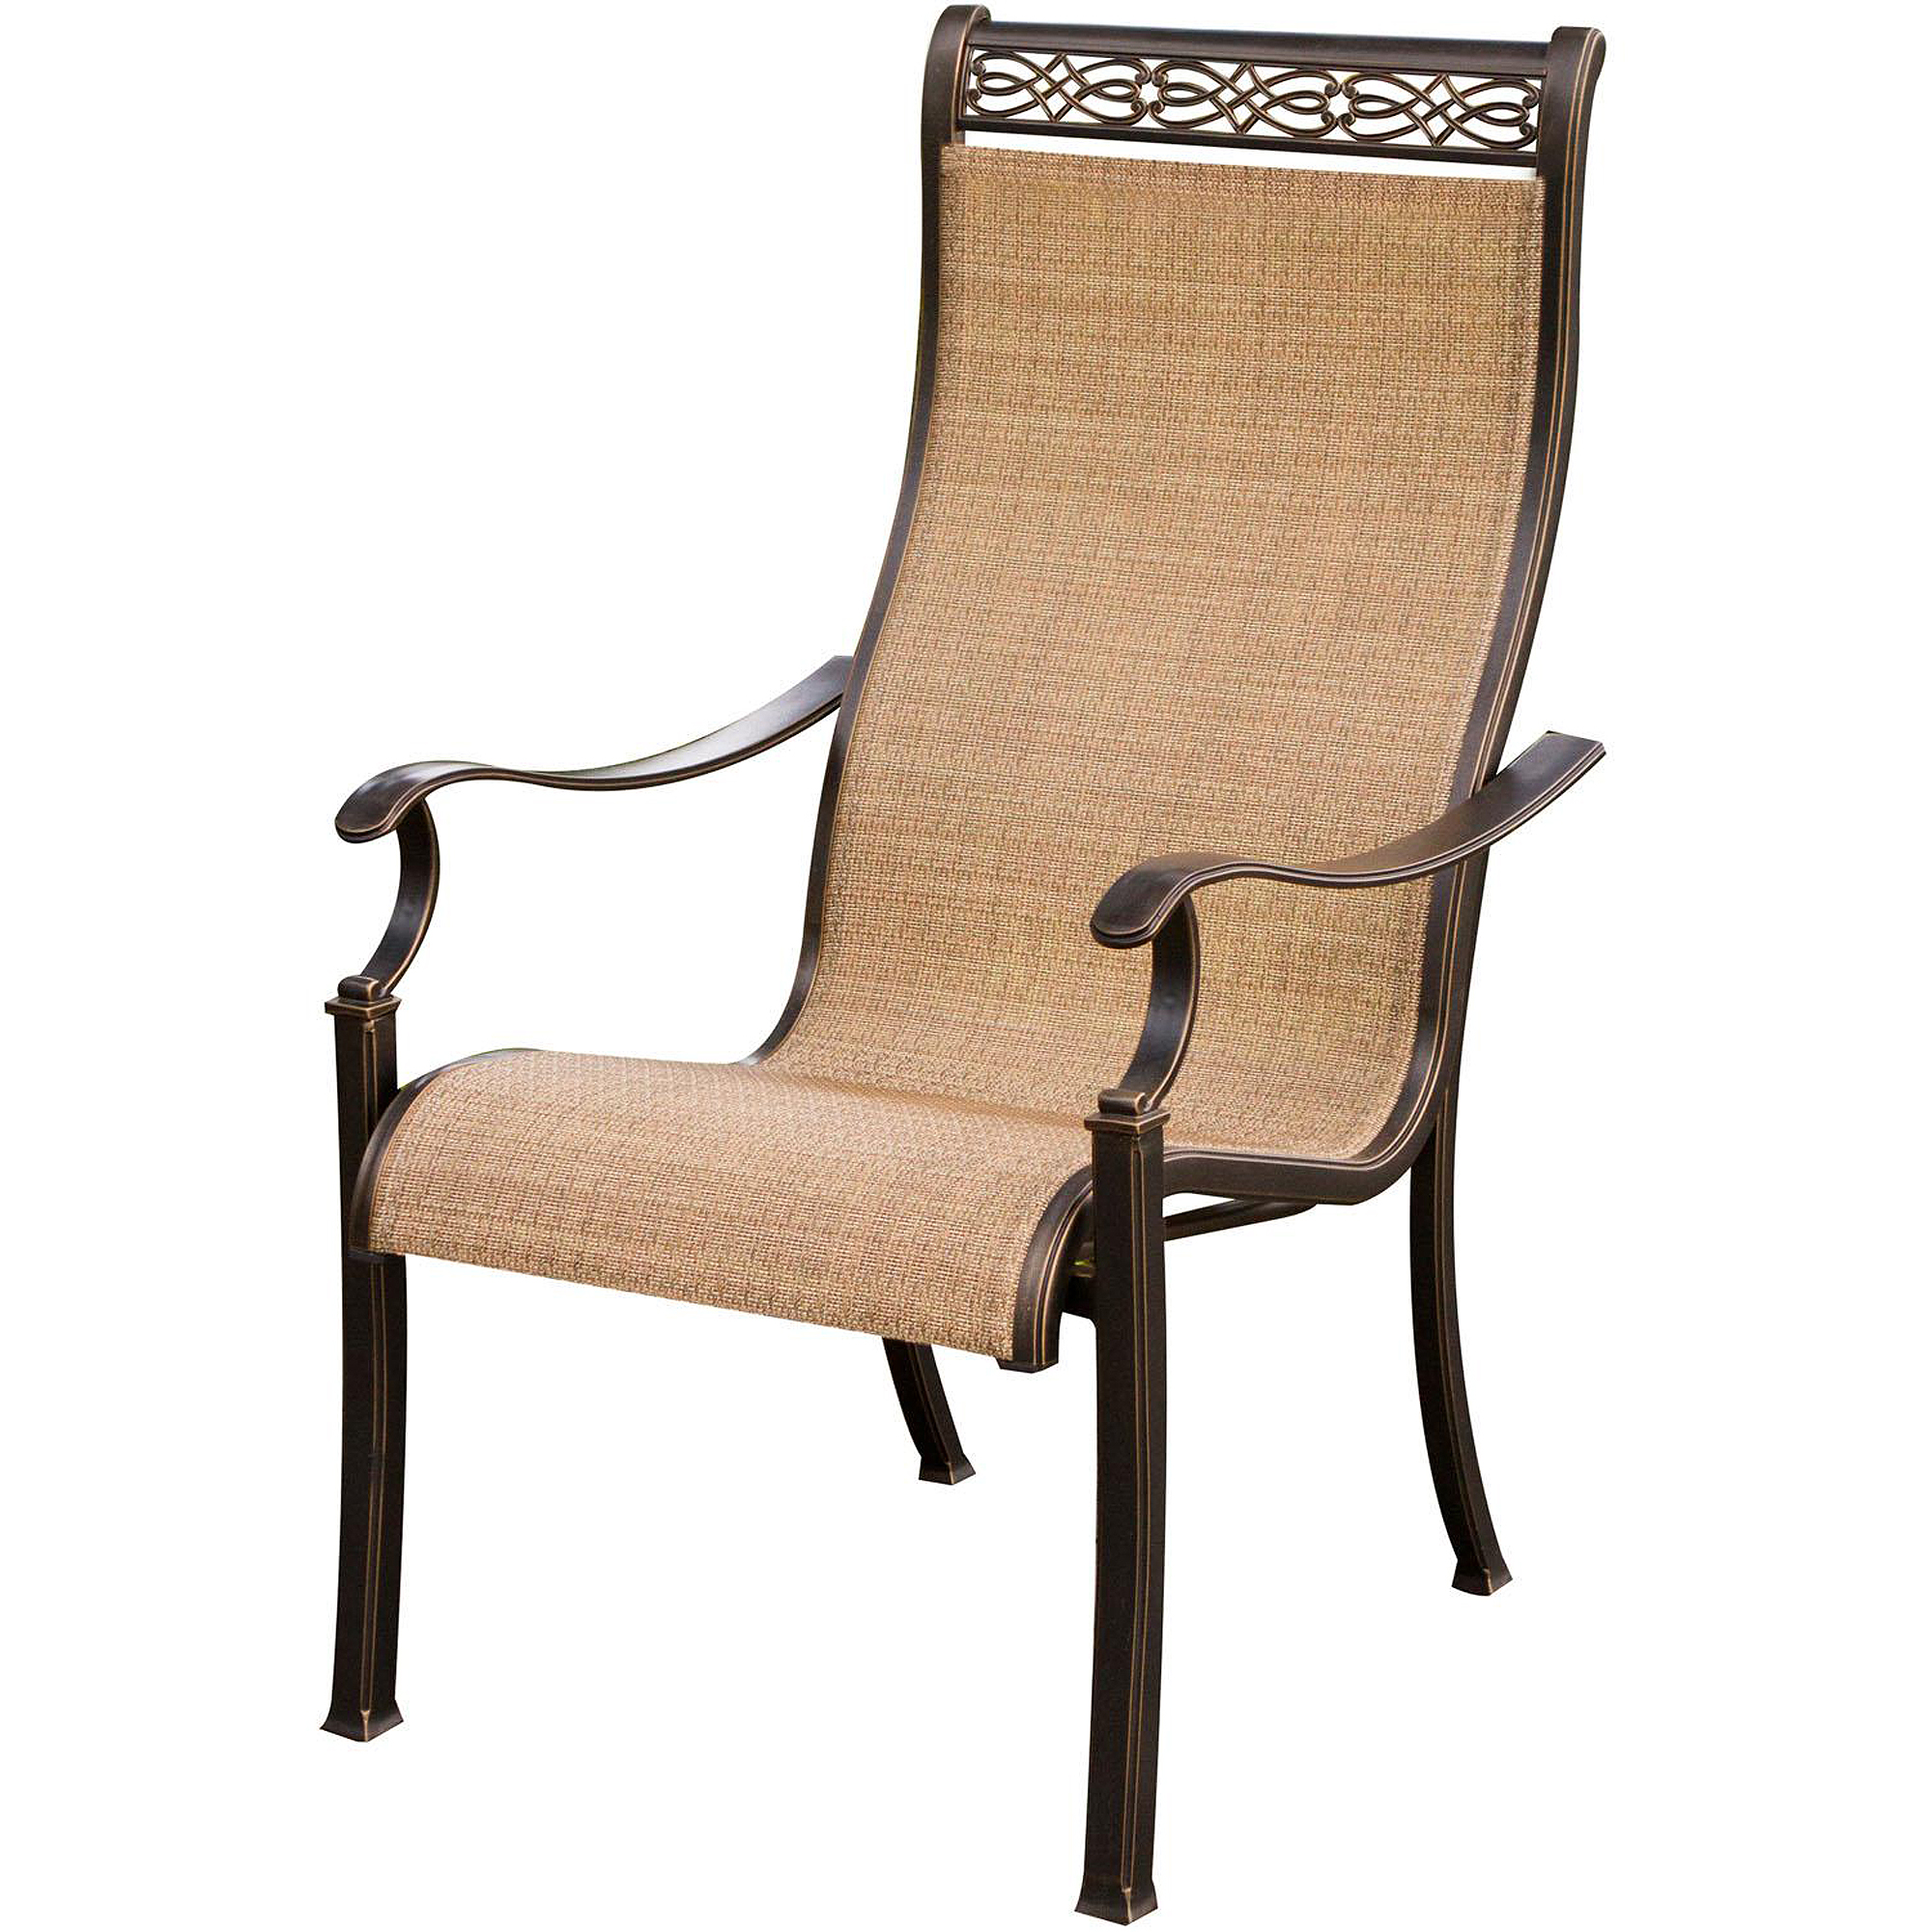 Attractive Hanover Monaco High Back Sling Outdoor Dining Chairs   Set Of 4    Walmart.com